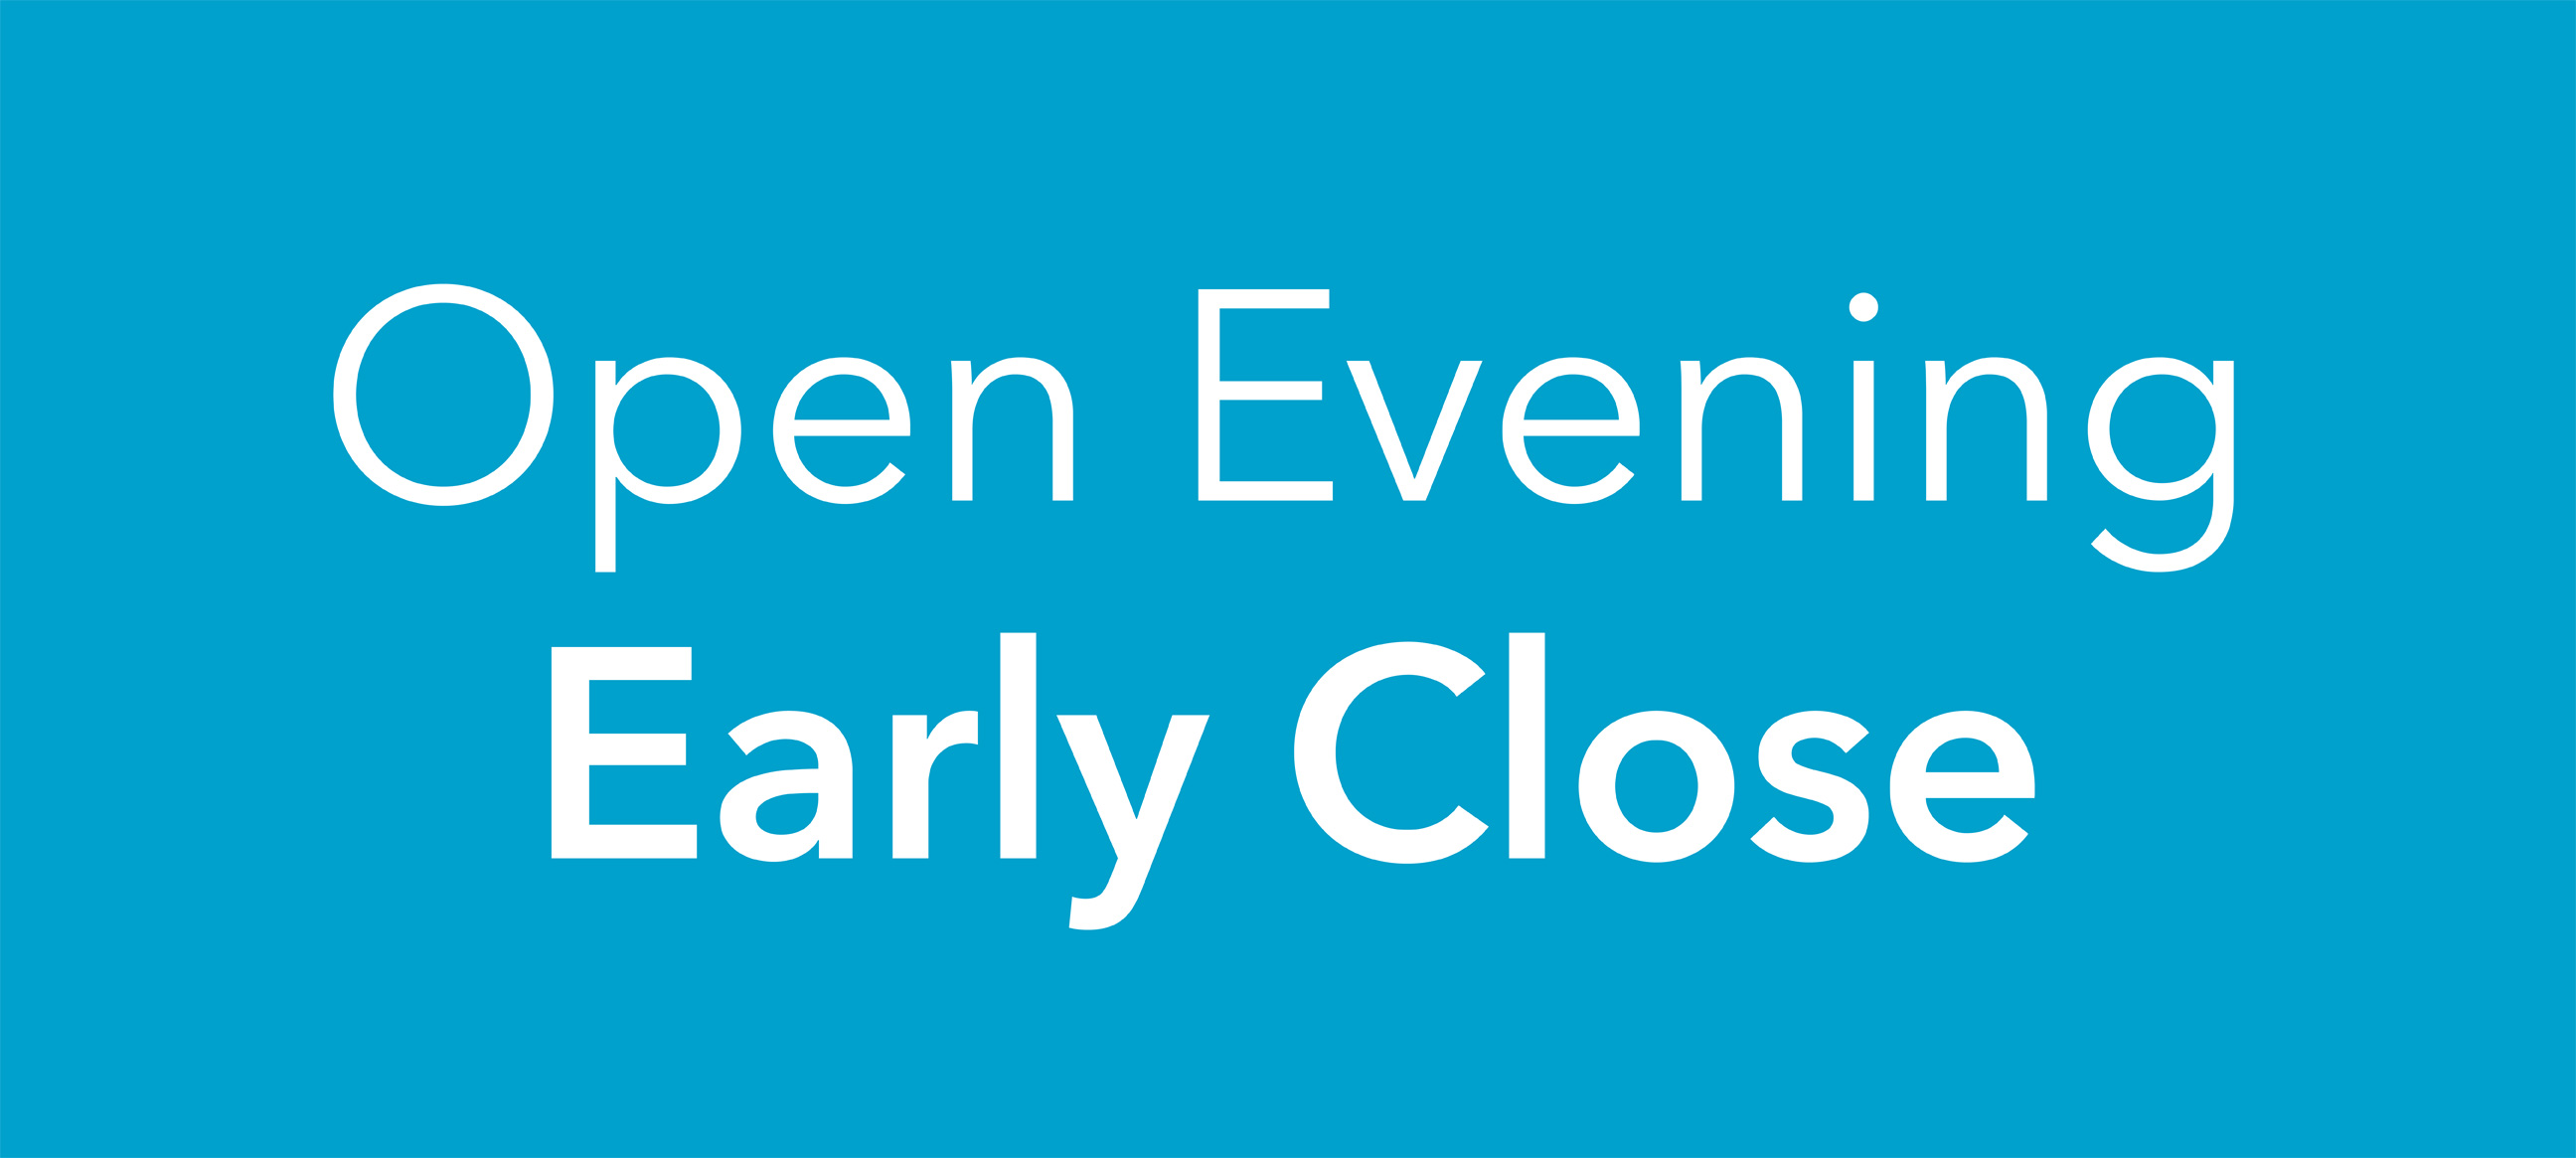 Open Evening 2019 : Early Close